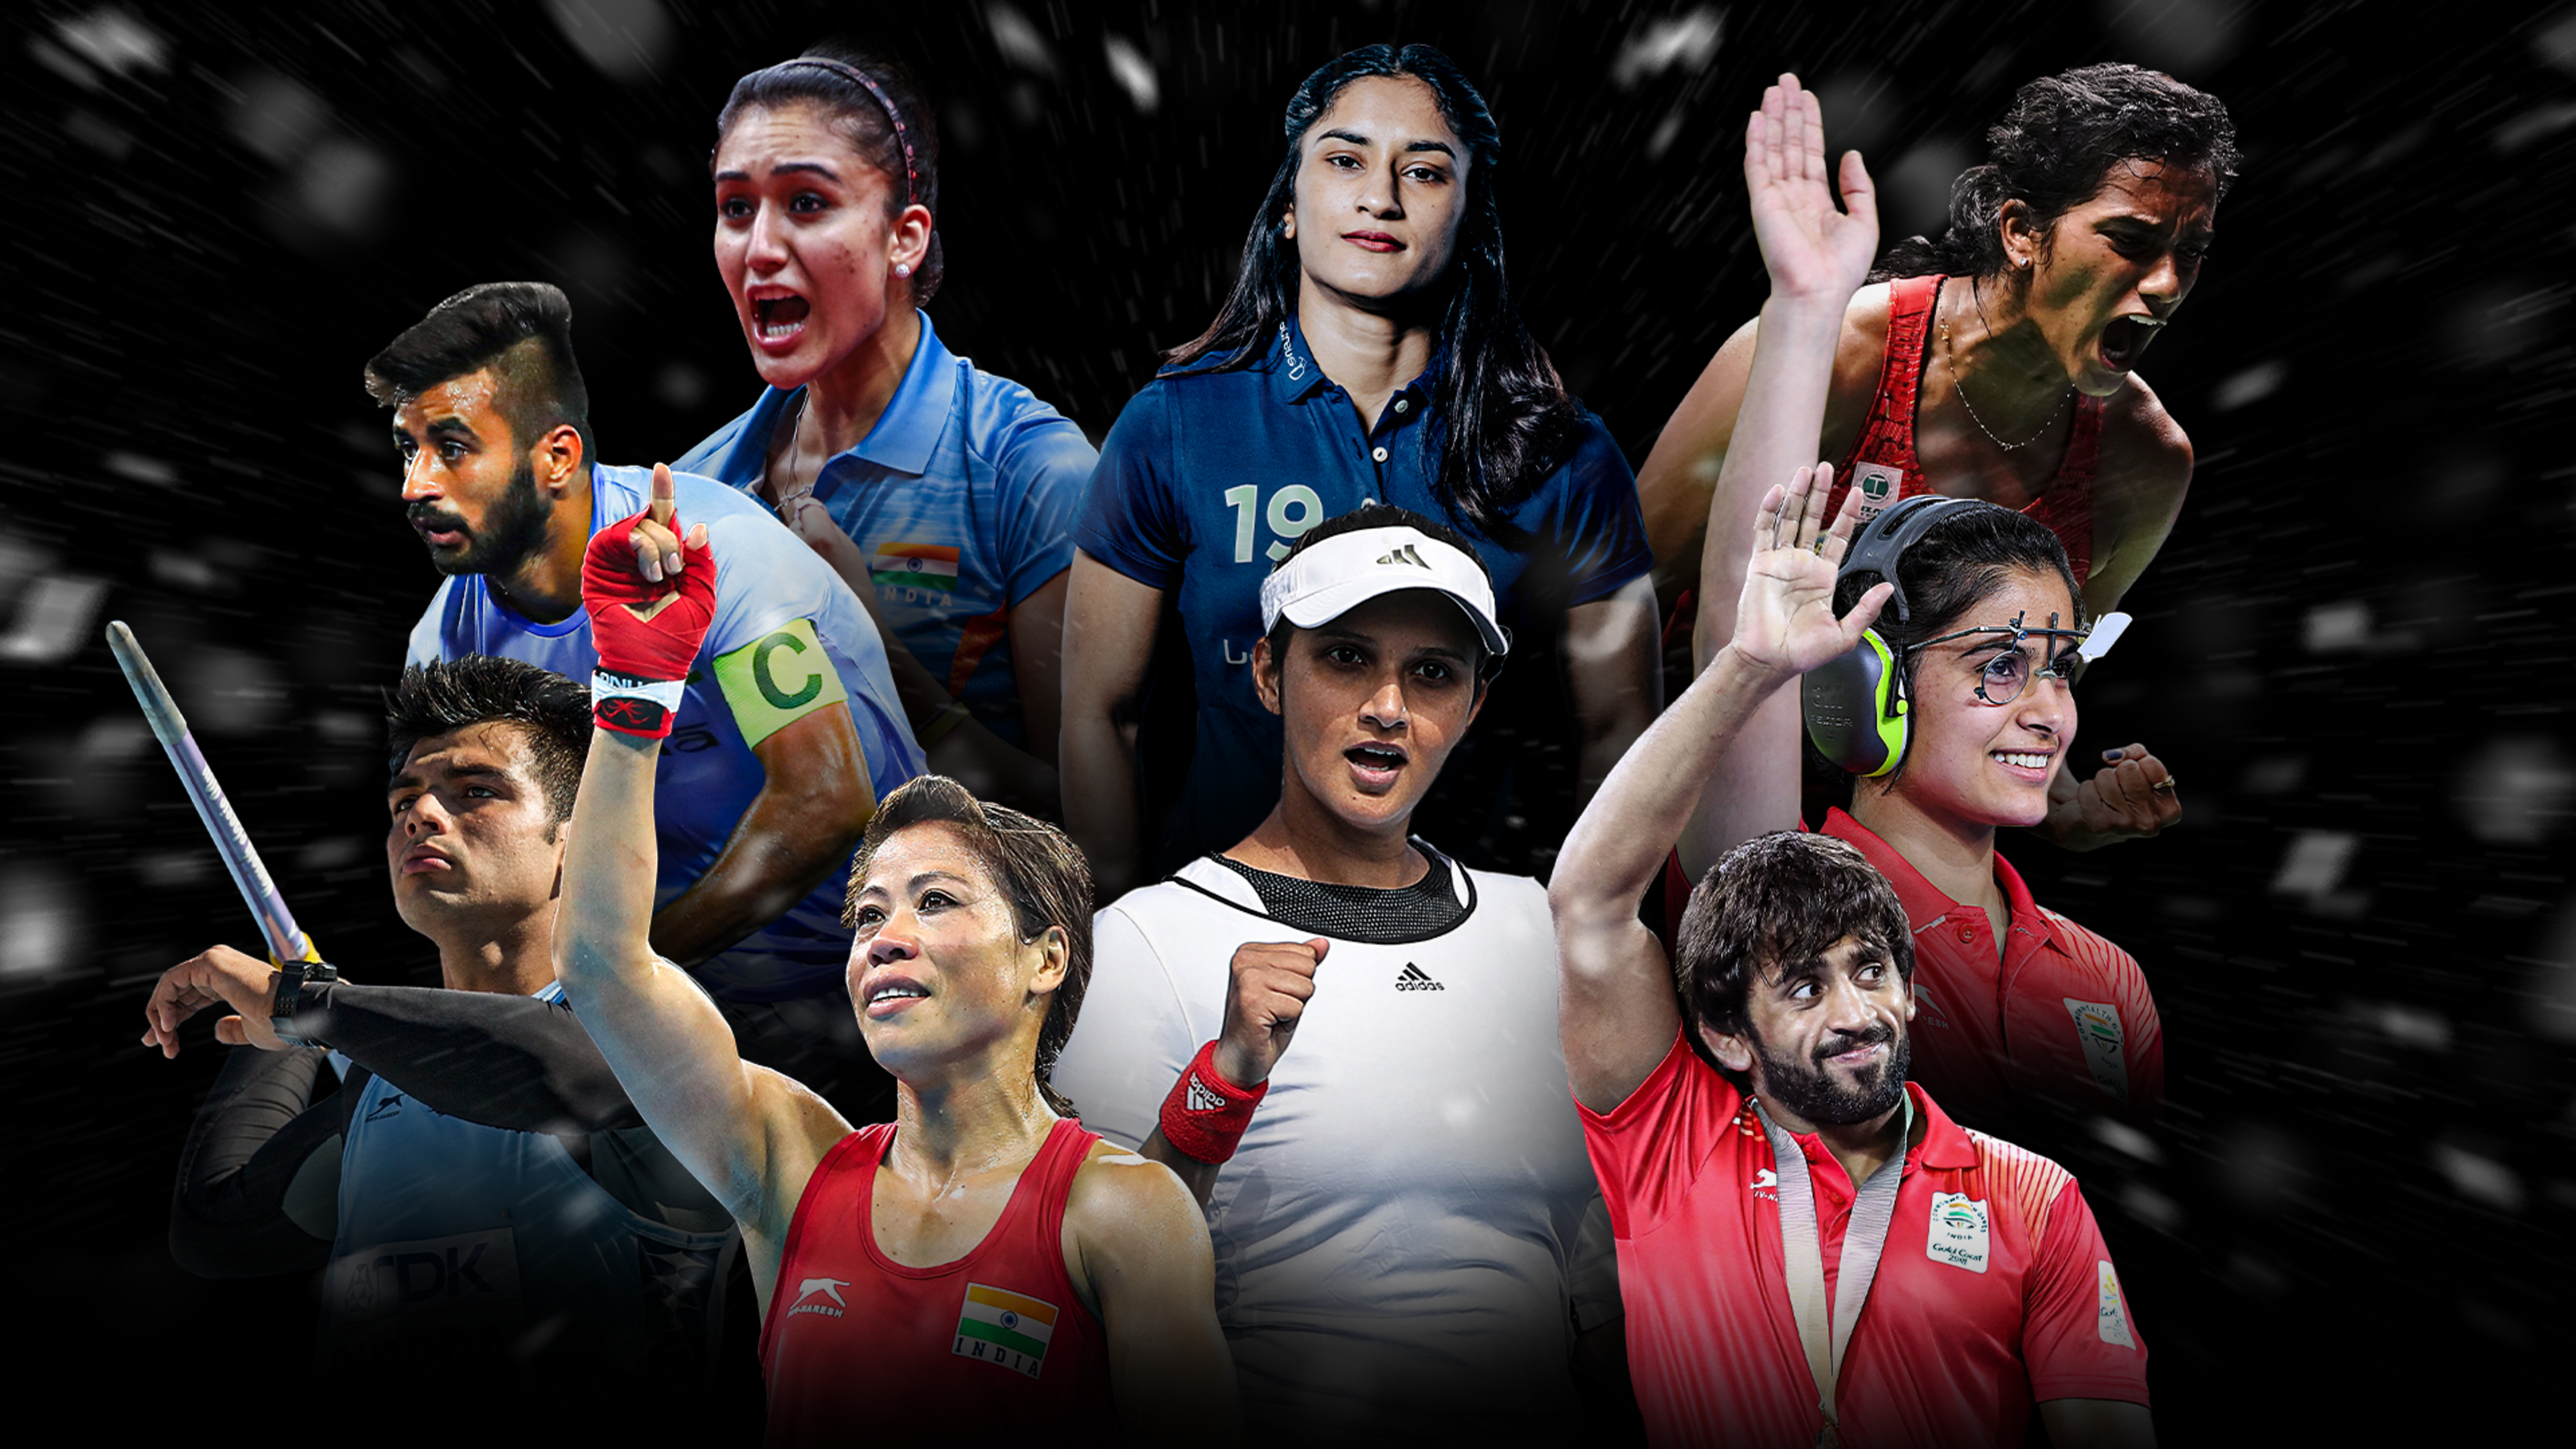 All Indian athletes qualified for Tokyo 20 Olympics